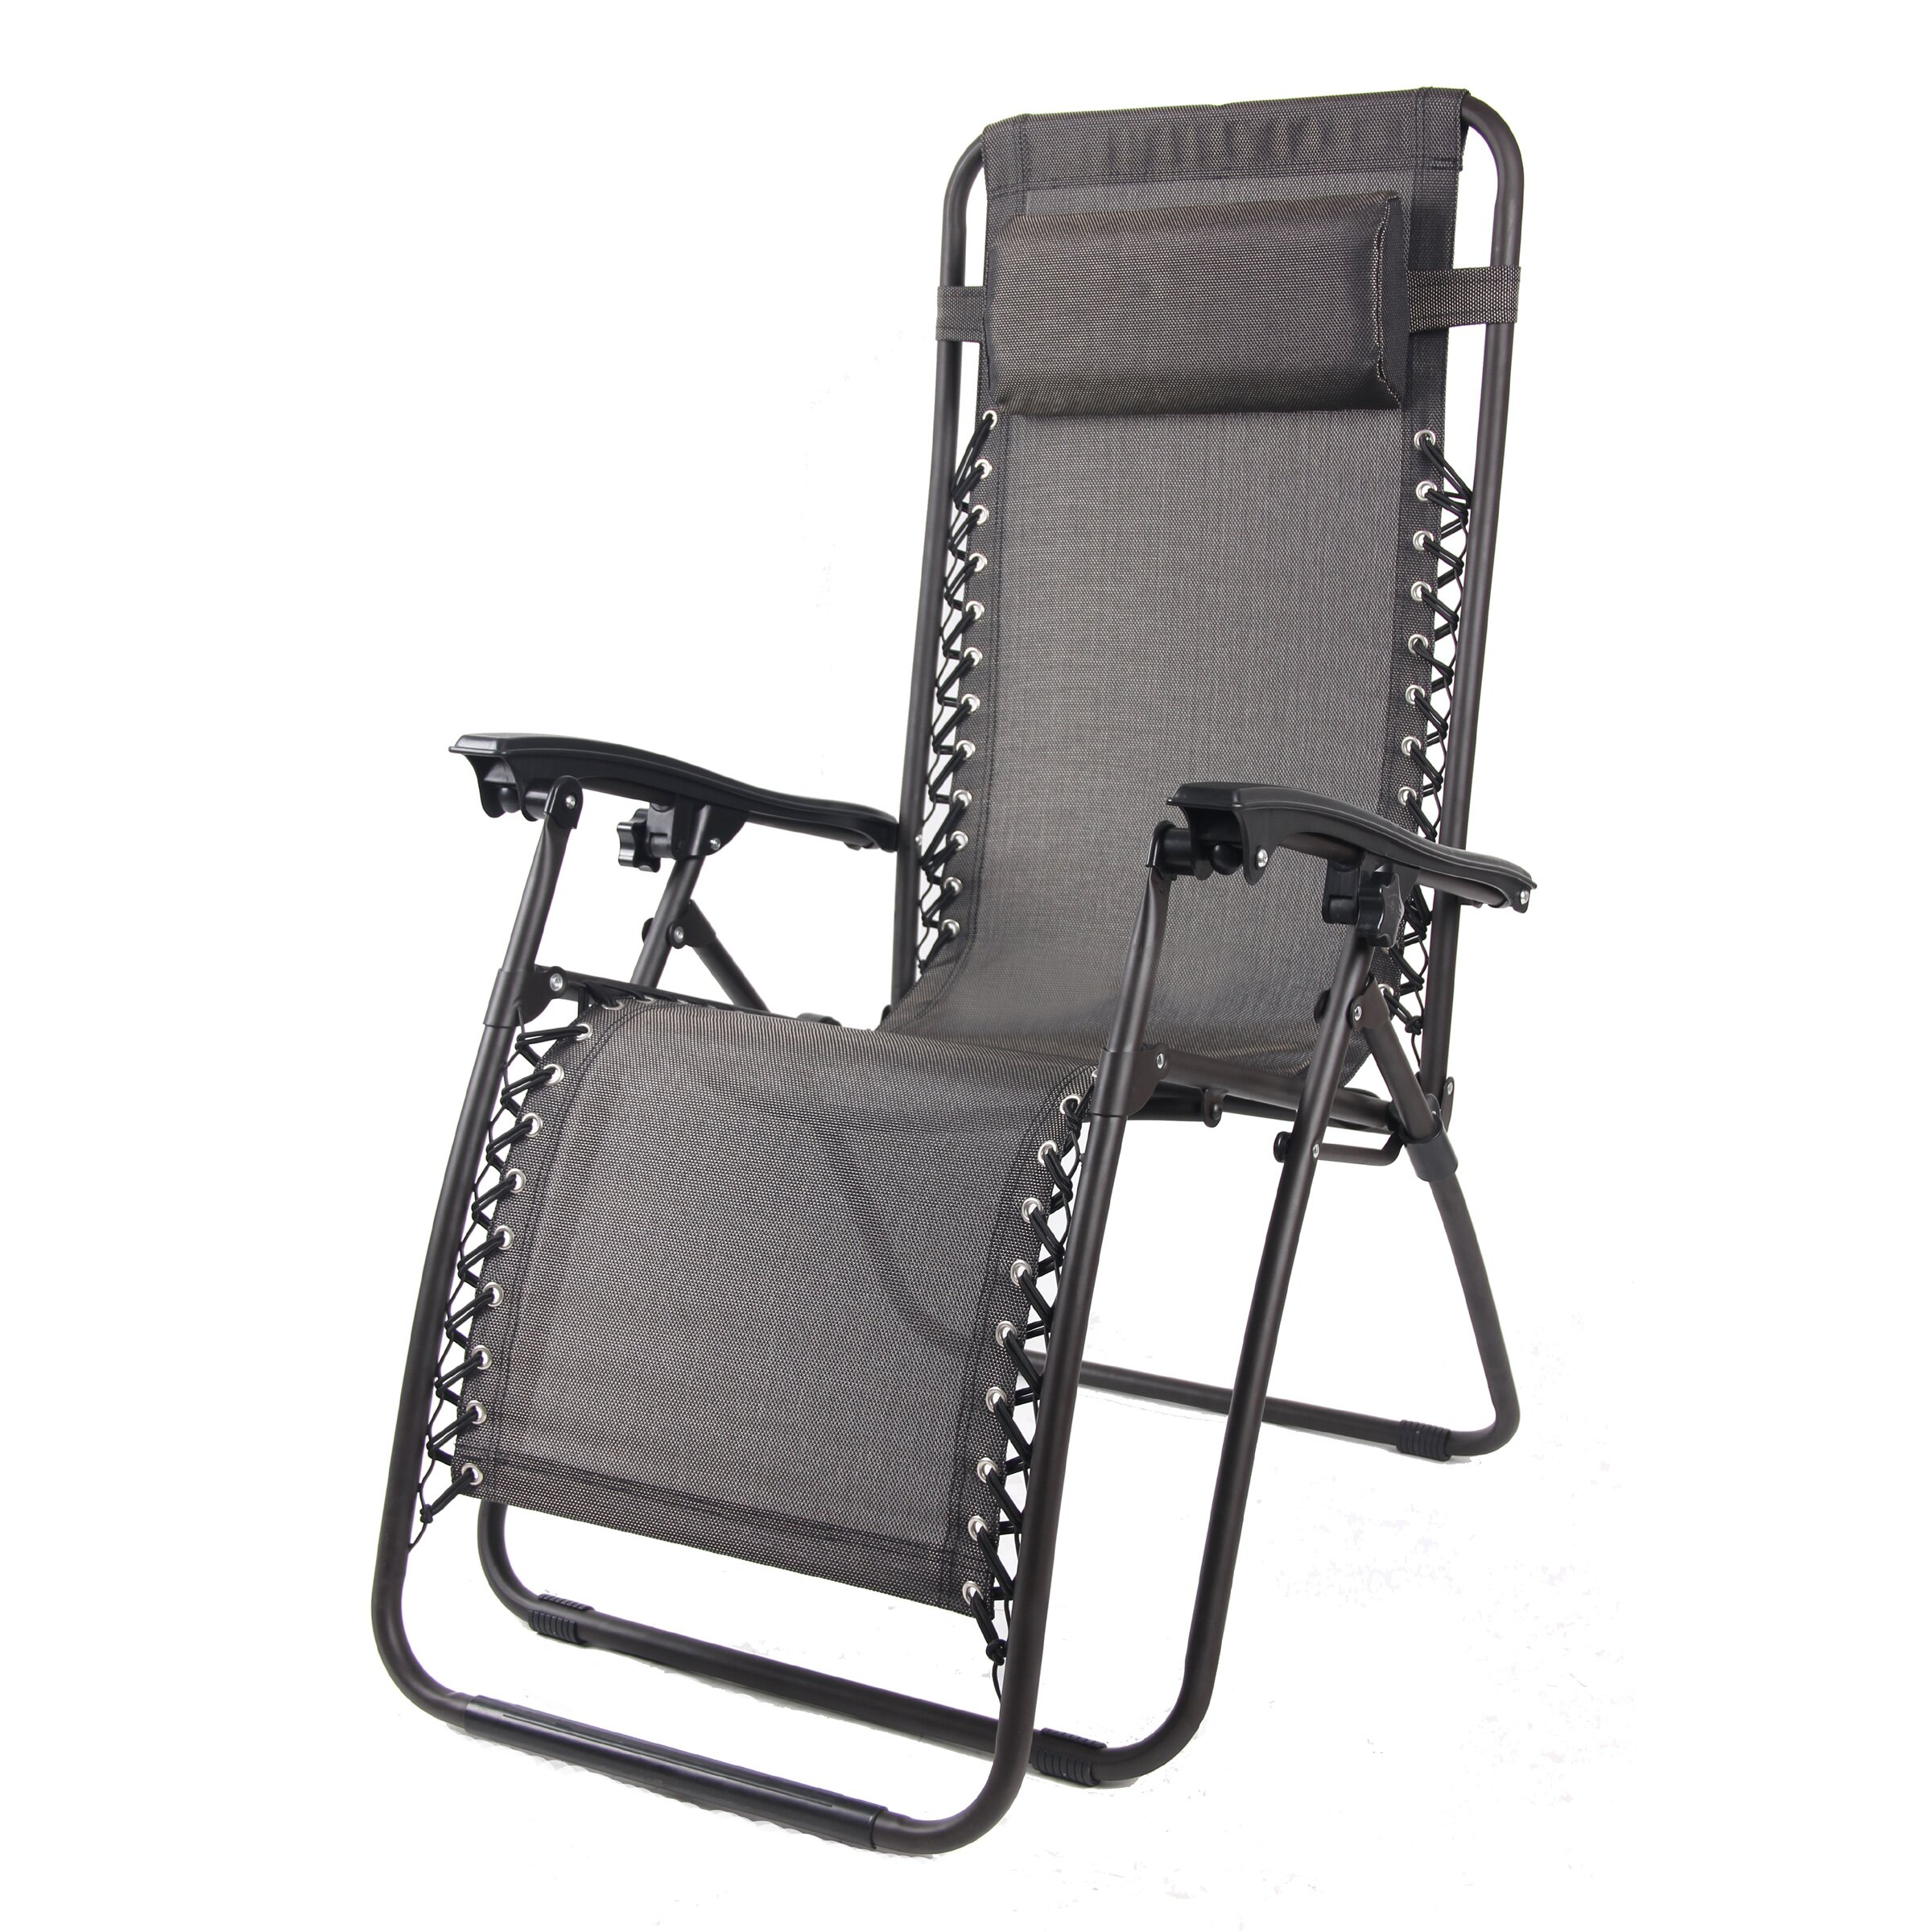 Gold sparrow pacific zero gravity chair reviews wayfair for Chair zero review